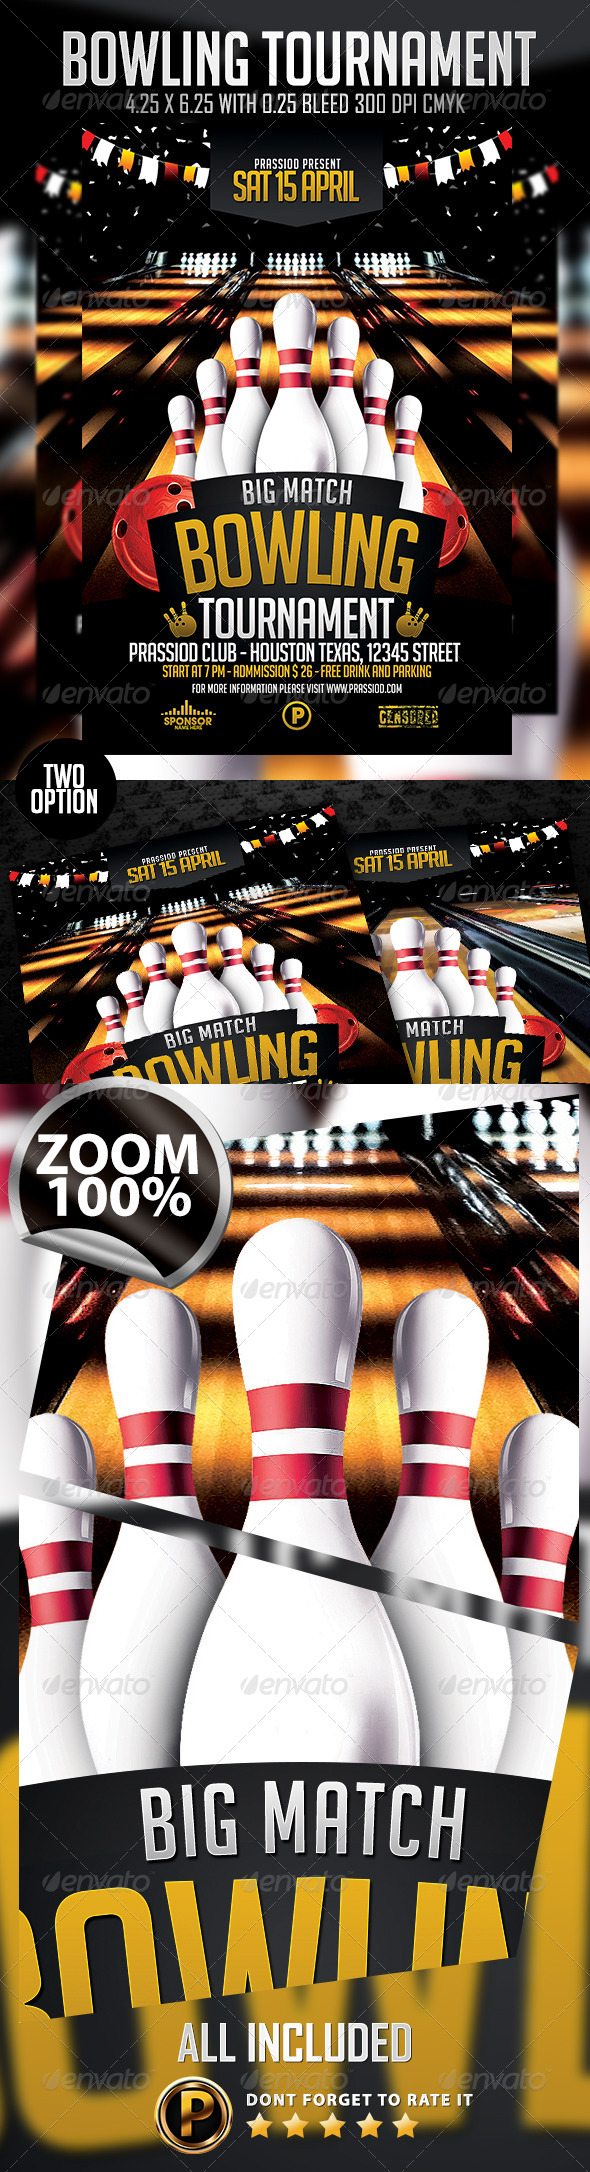 Bowling Tournament Flyer Template - Events Flyers